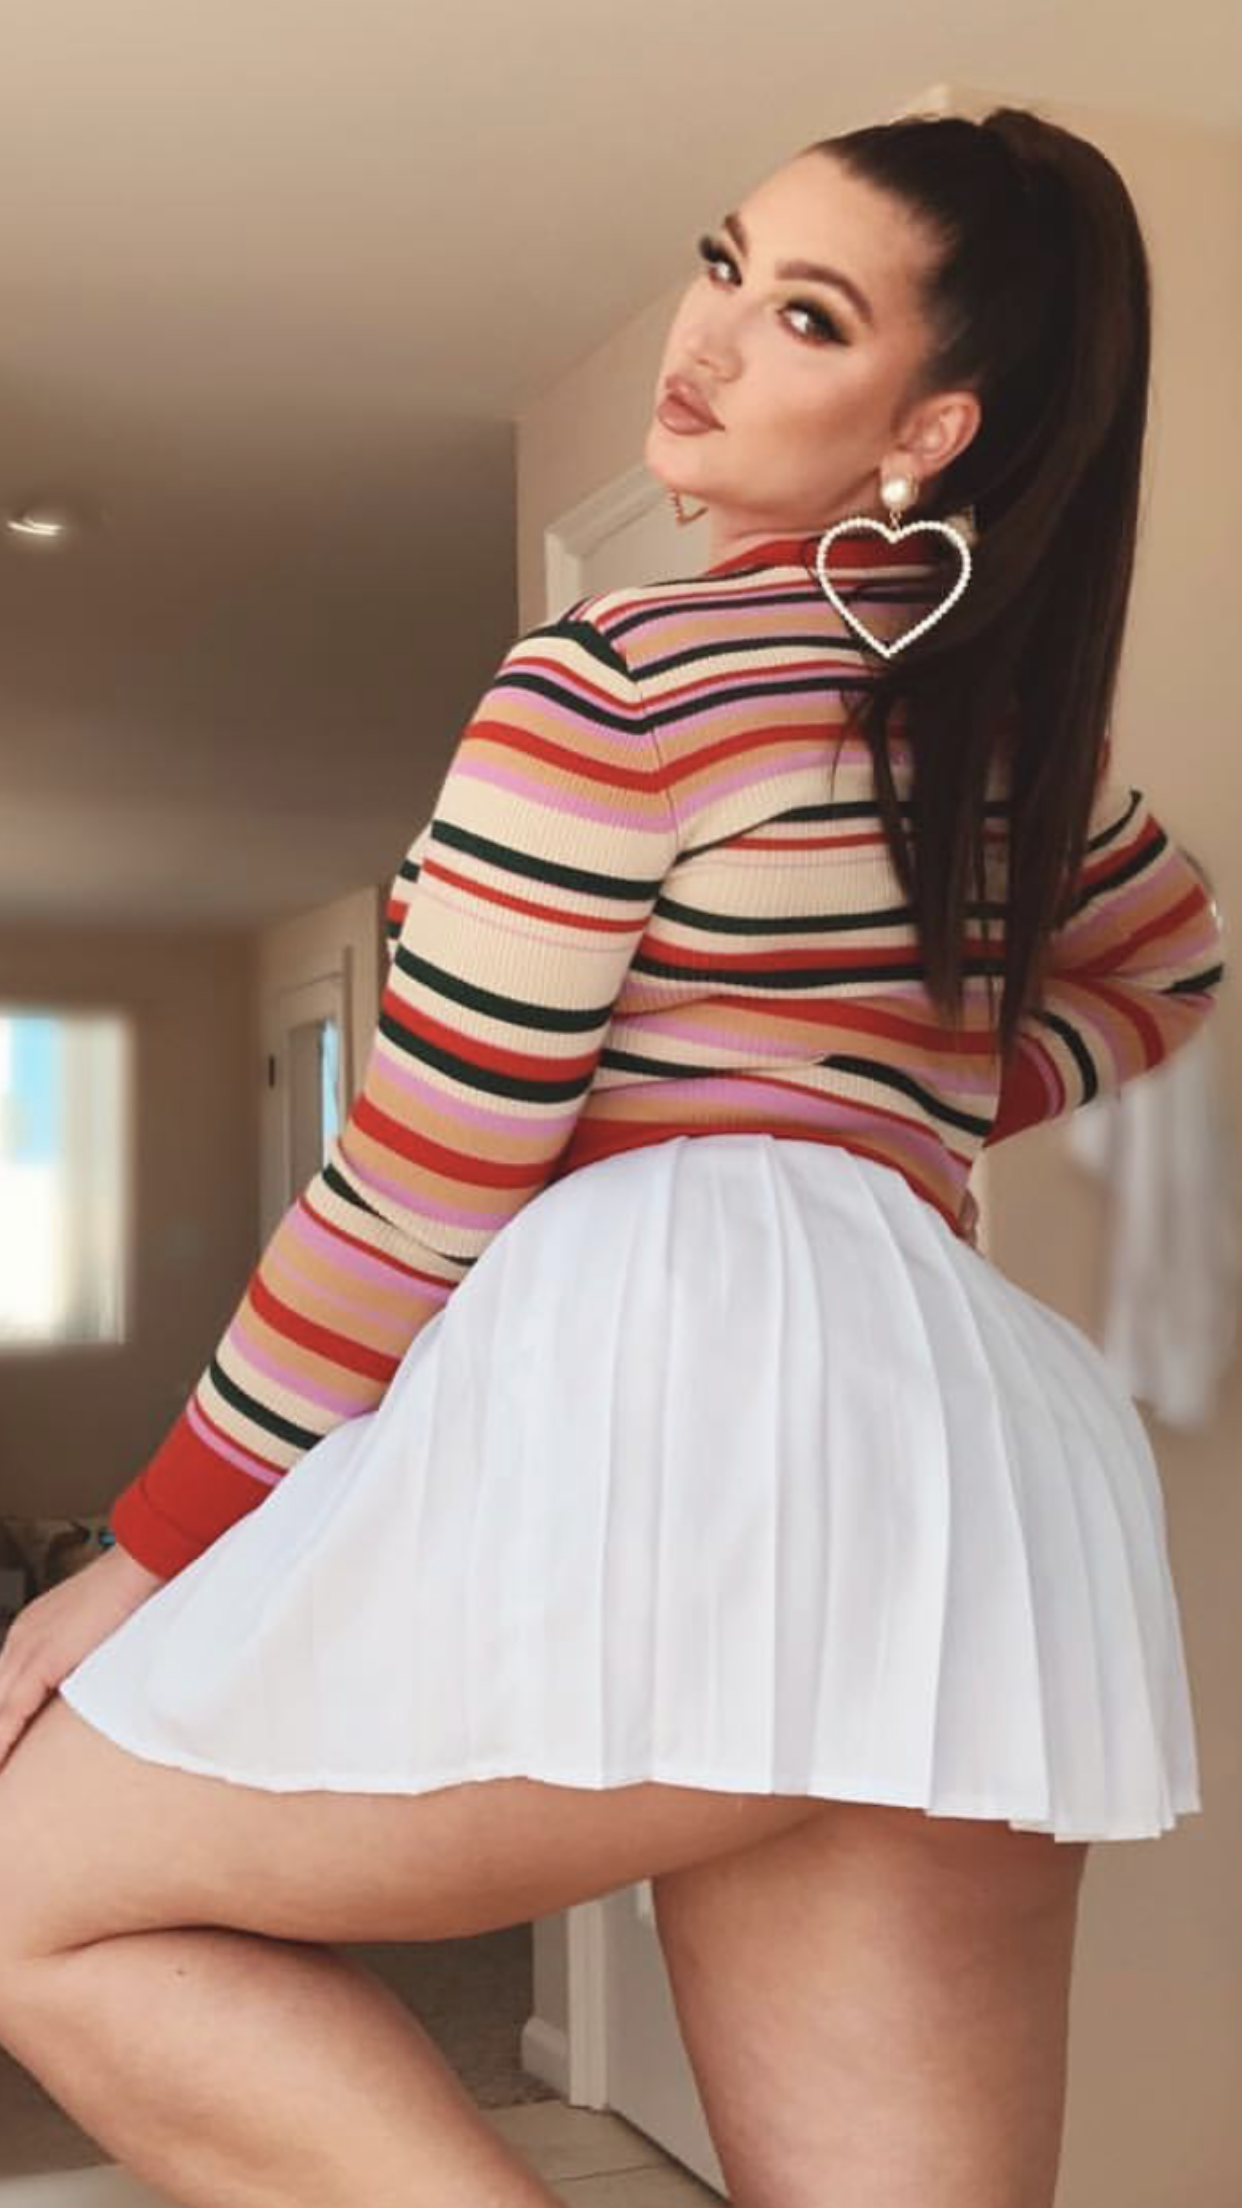 Sexy voluptuous girls in skirts pics